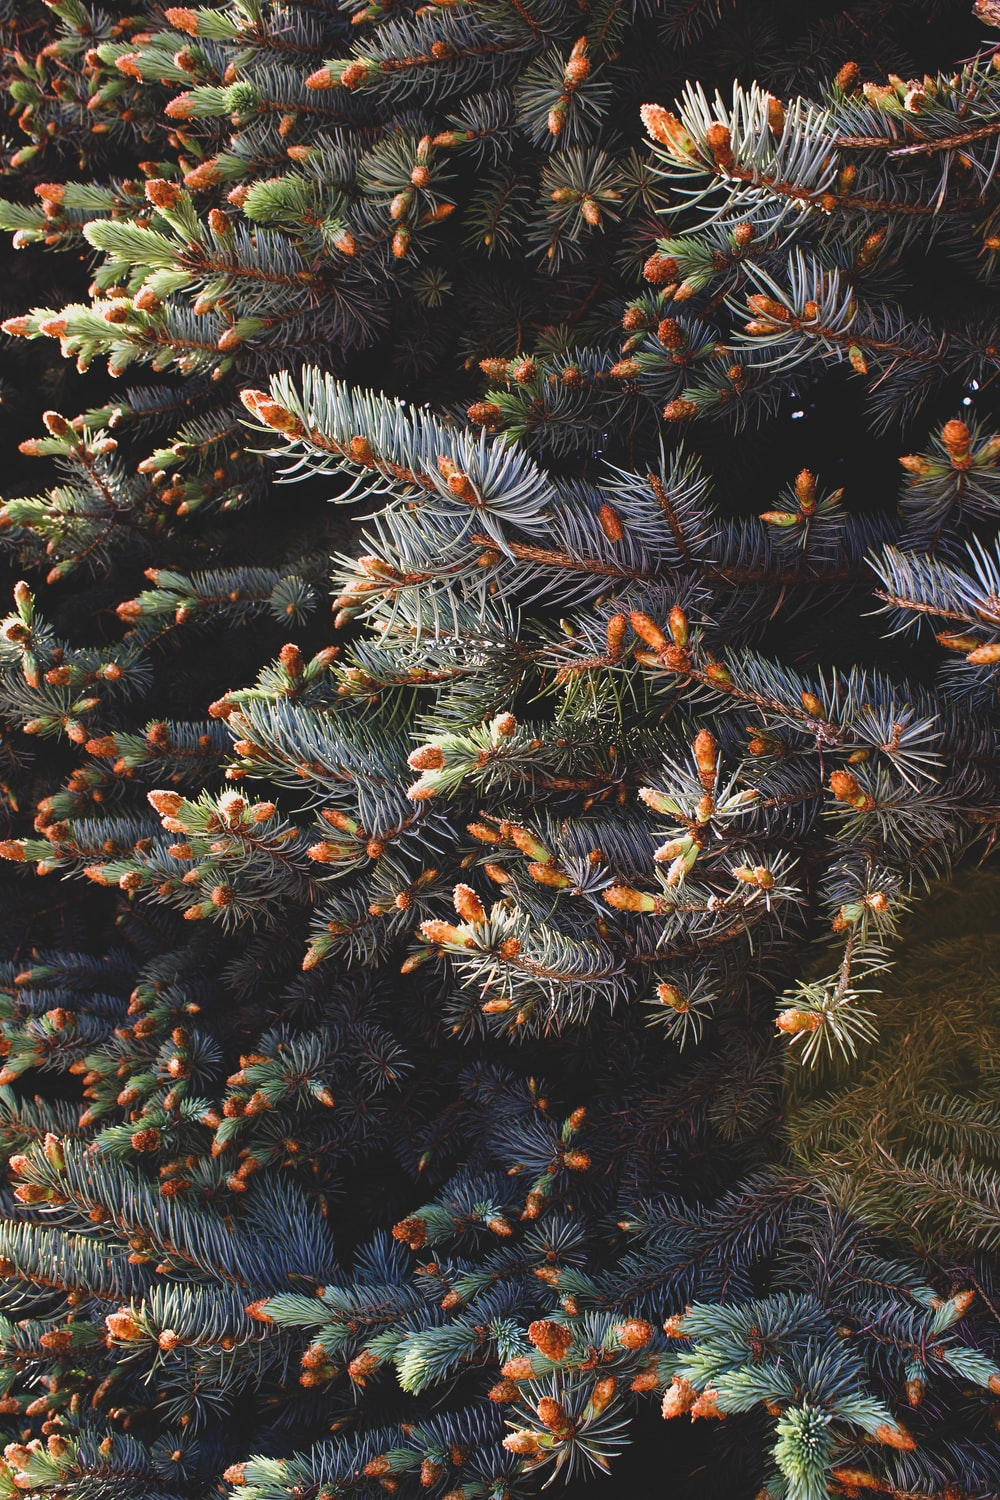 green and brown pine tree